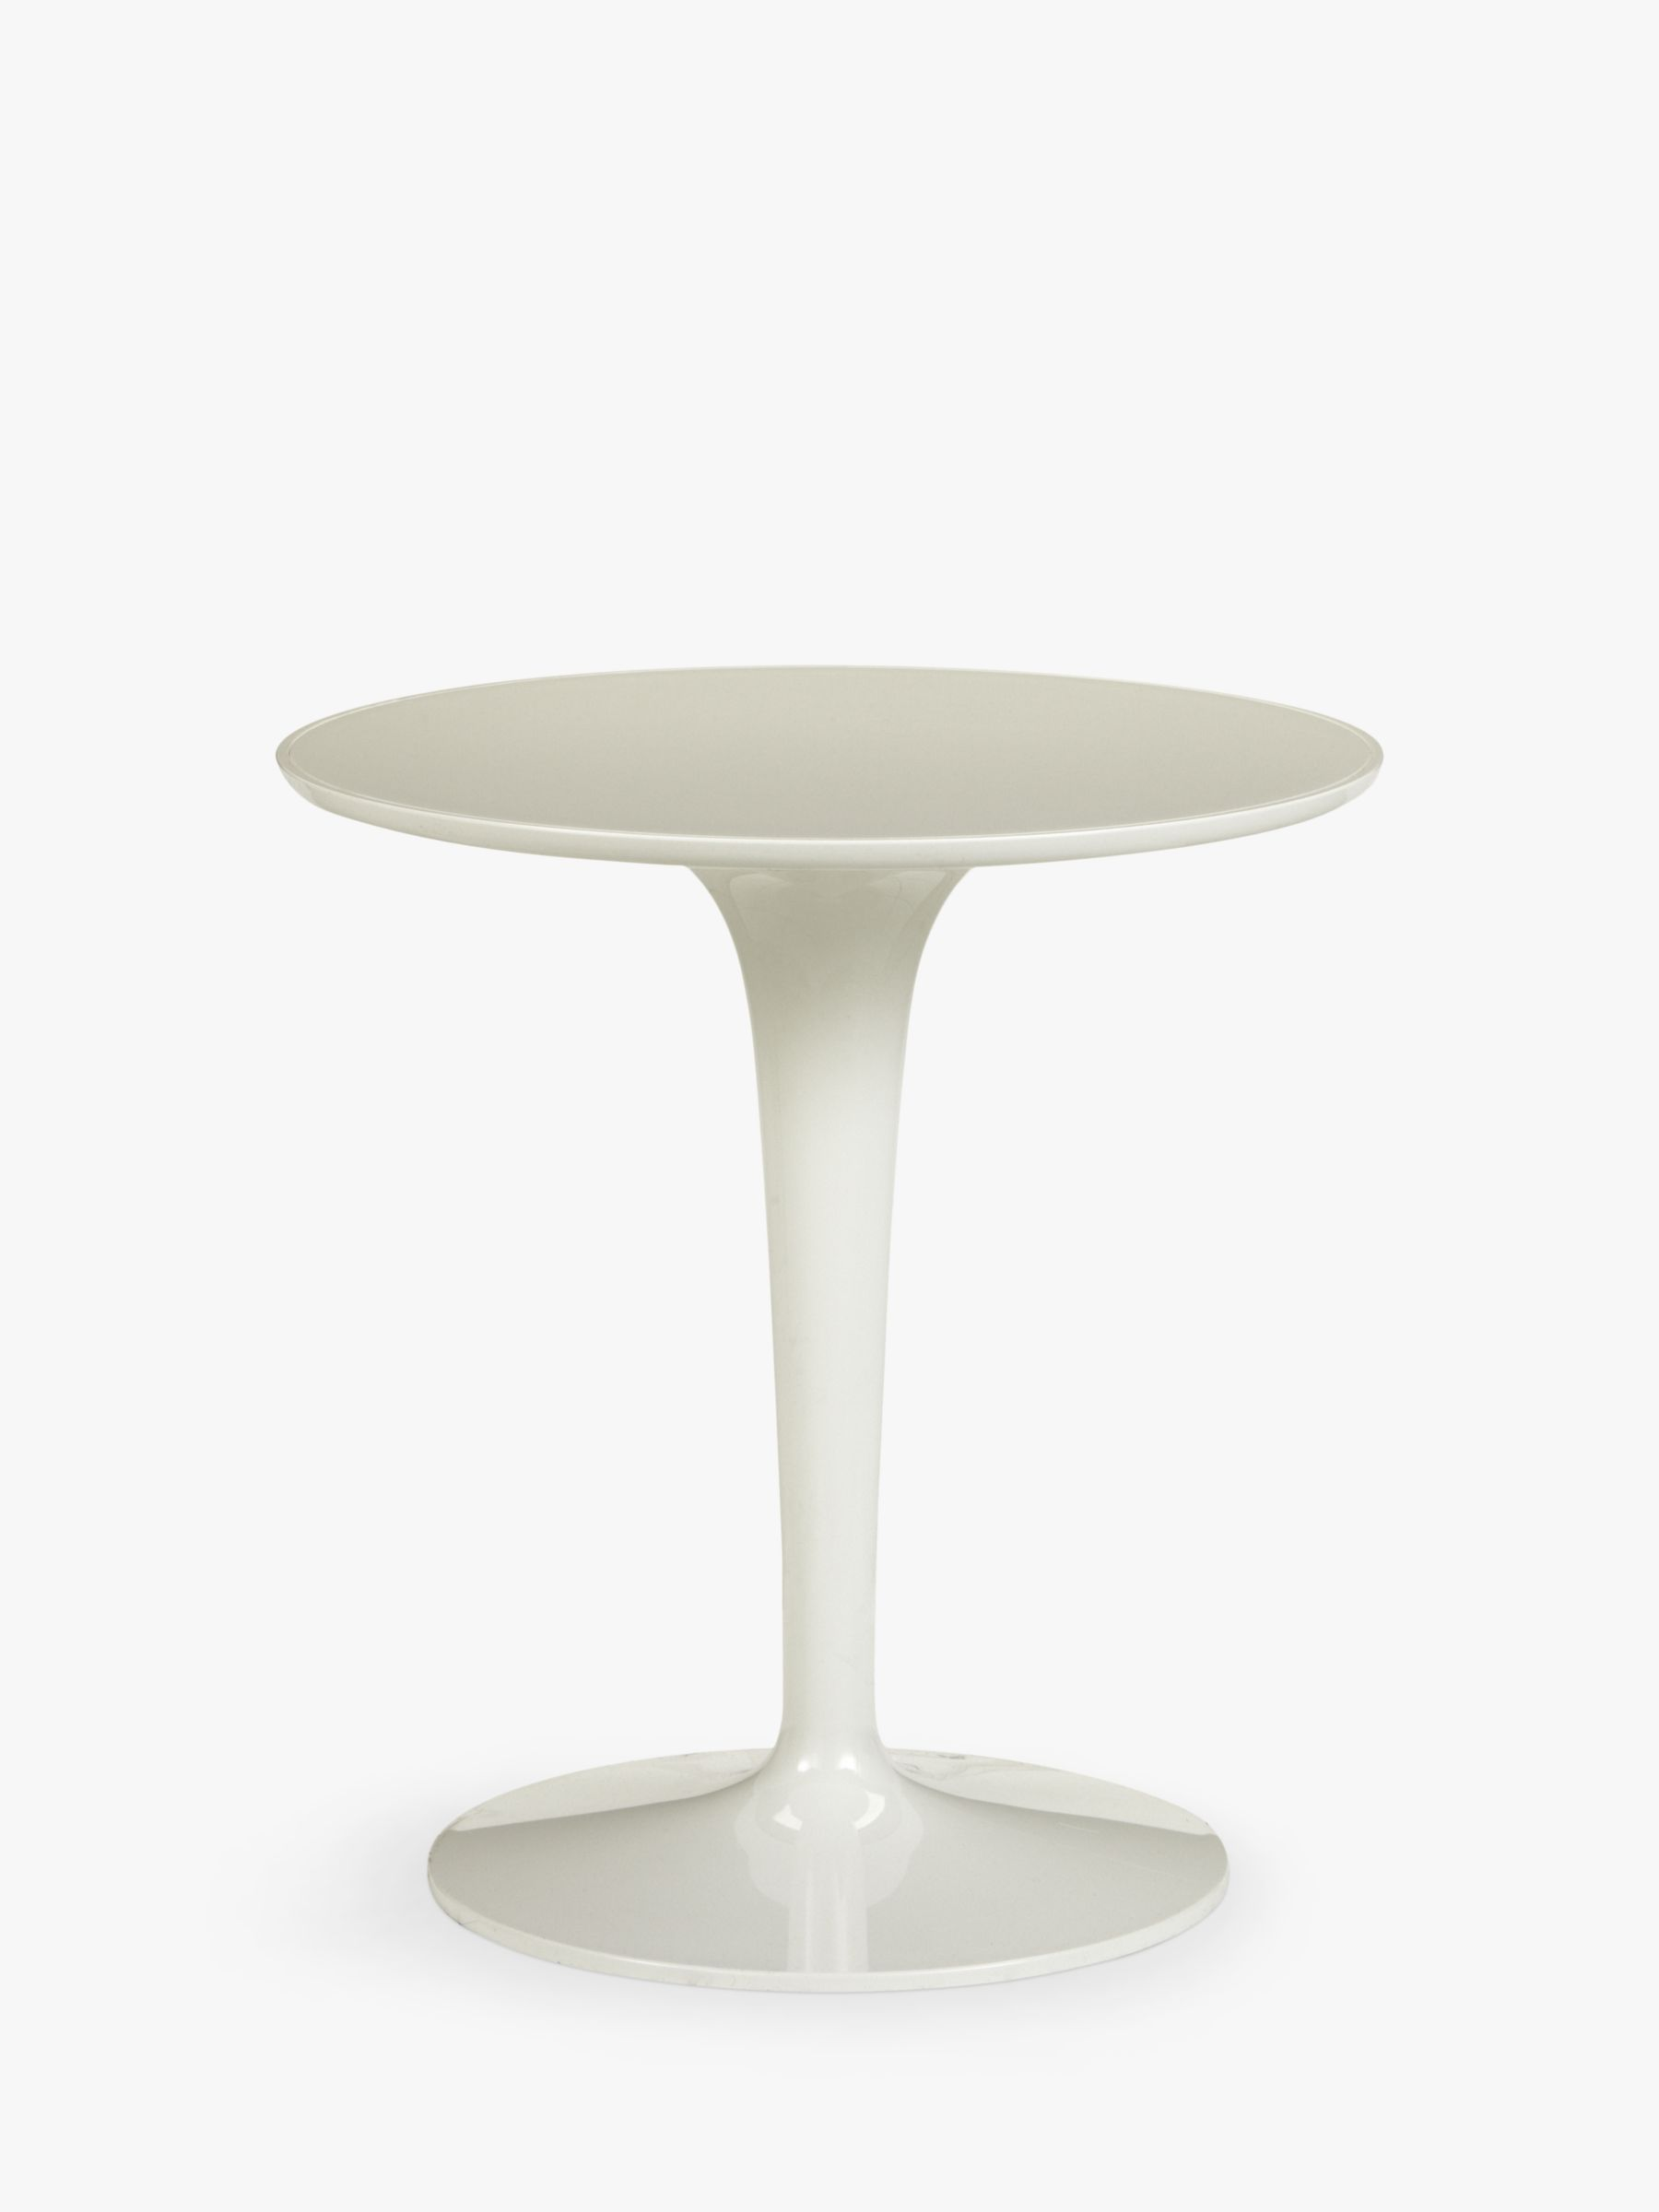 Kartell Philippe Starck for Kartell Tip Top Table